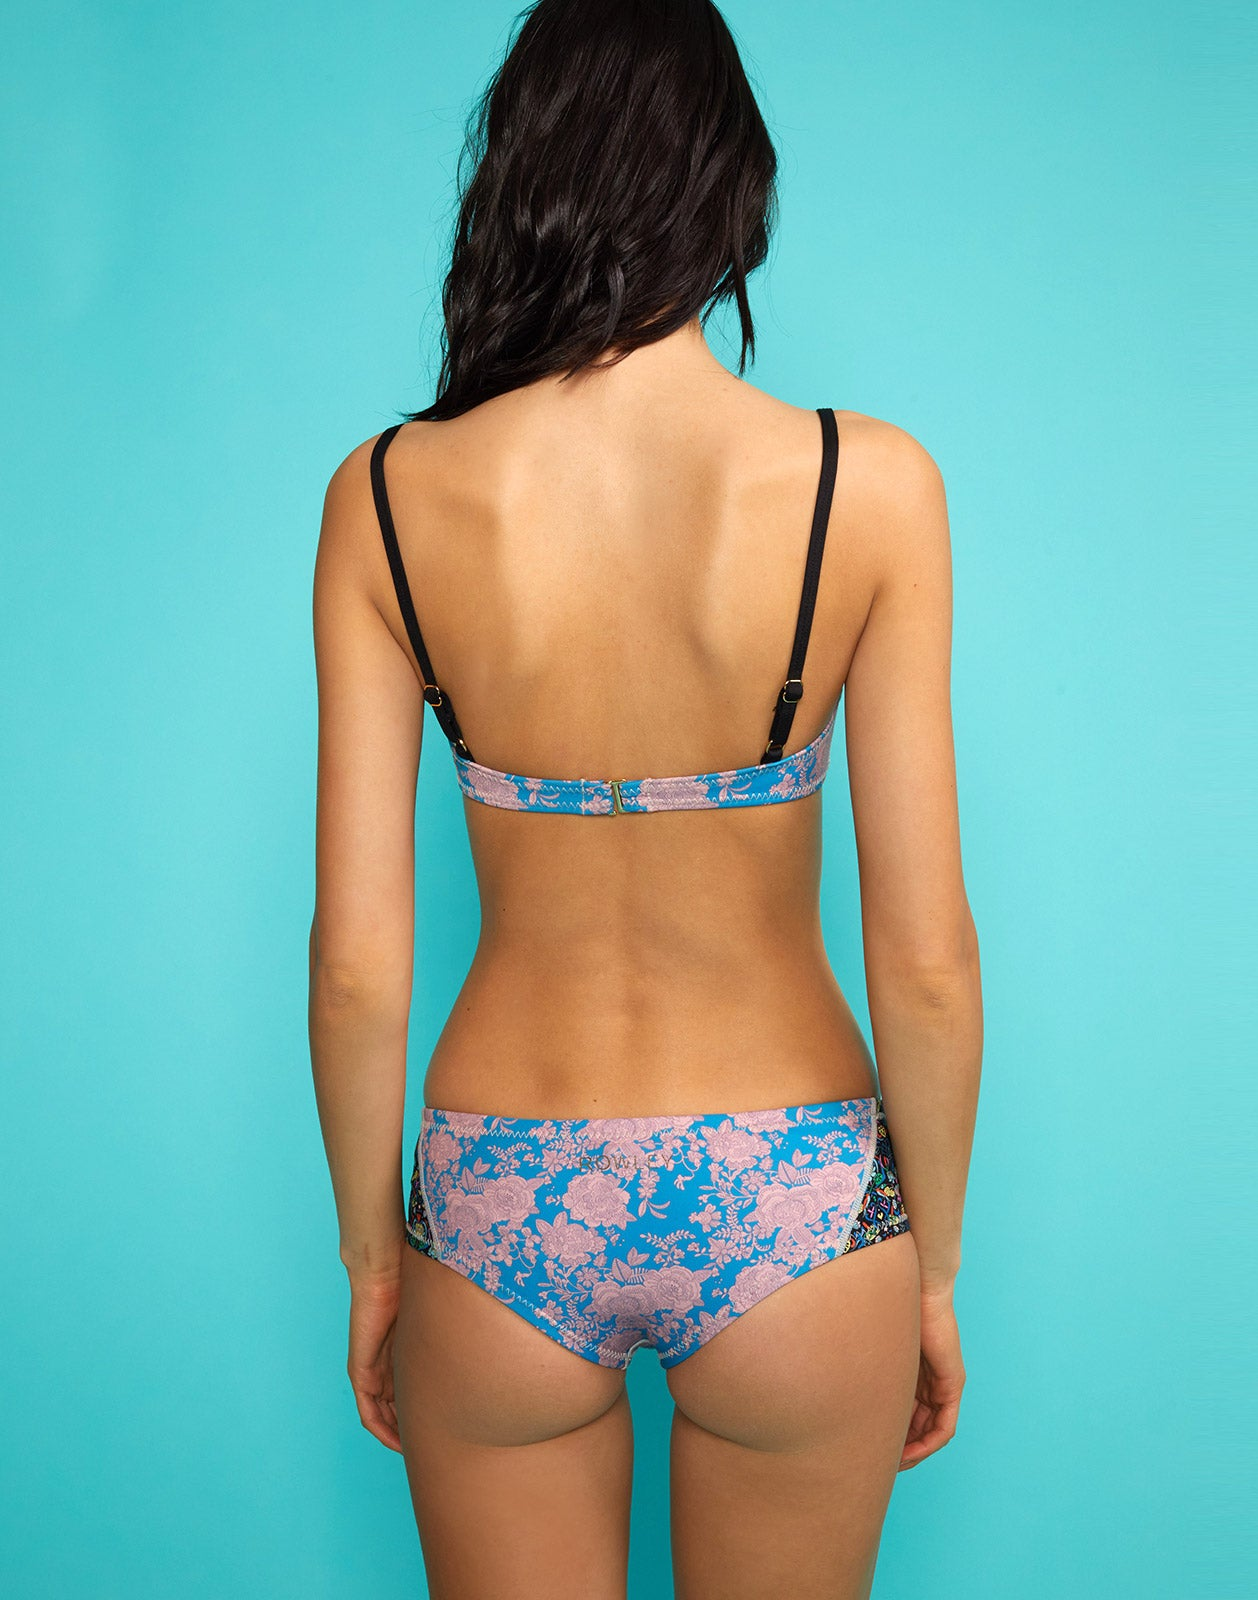 Back view of model wearing London Floral Bikini Bottom with London Floral Bikini Top.